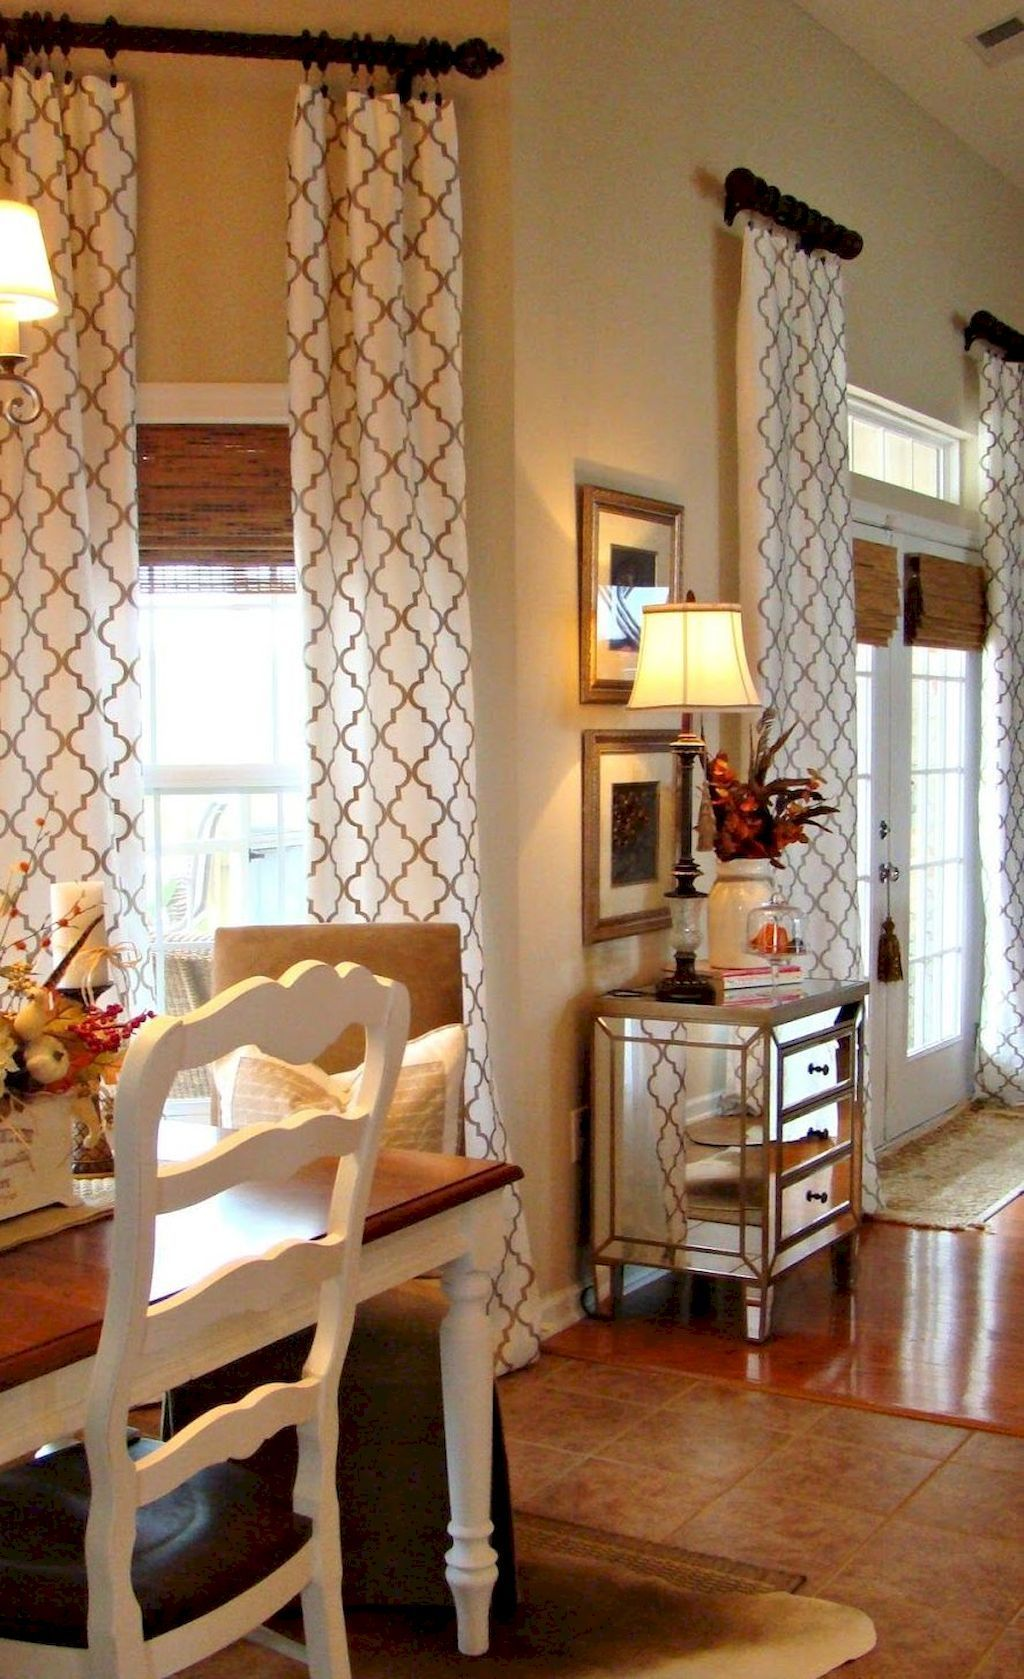 95 Modern Farmhouse Curtains for Living Room Decorating ... on Farmhouse Curtain Ideas For Living Room  id=50623